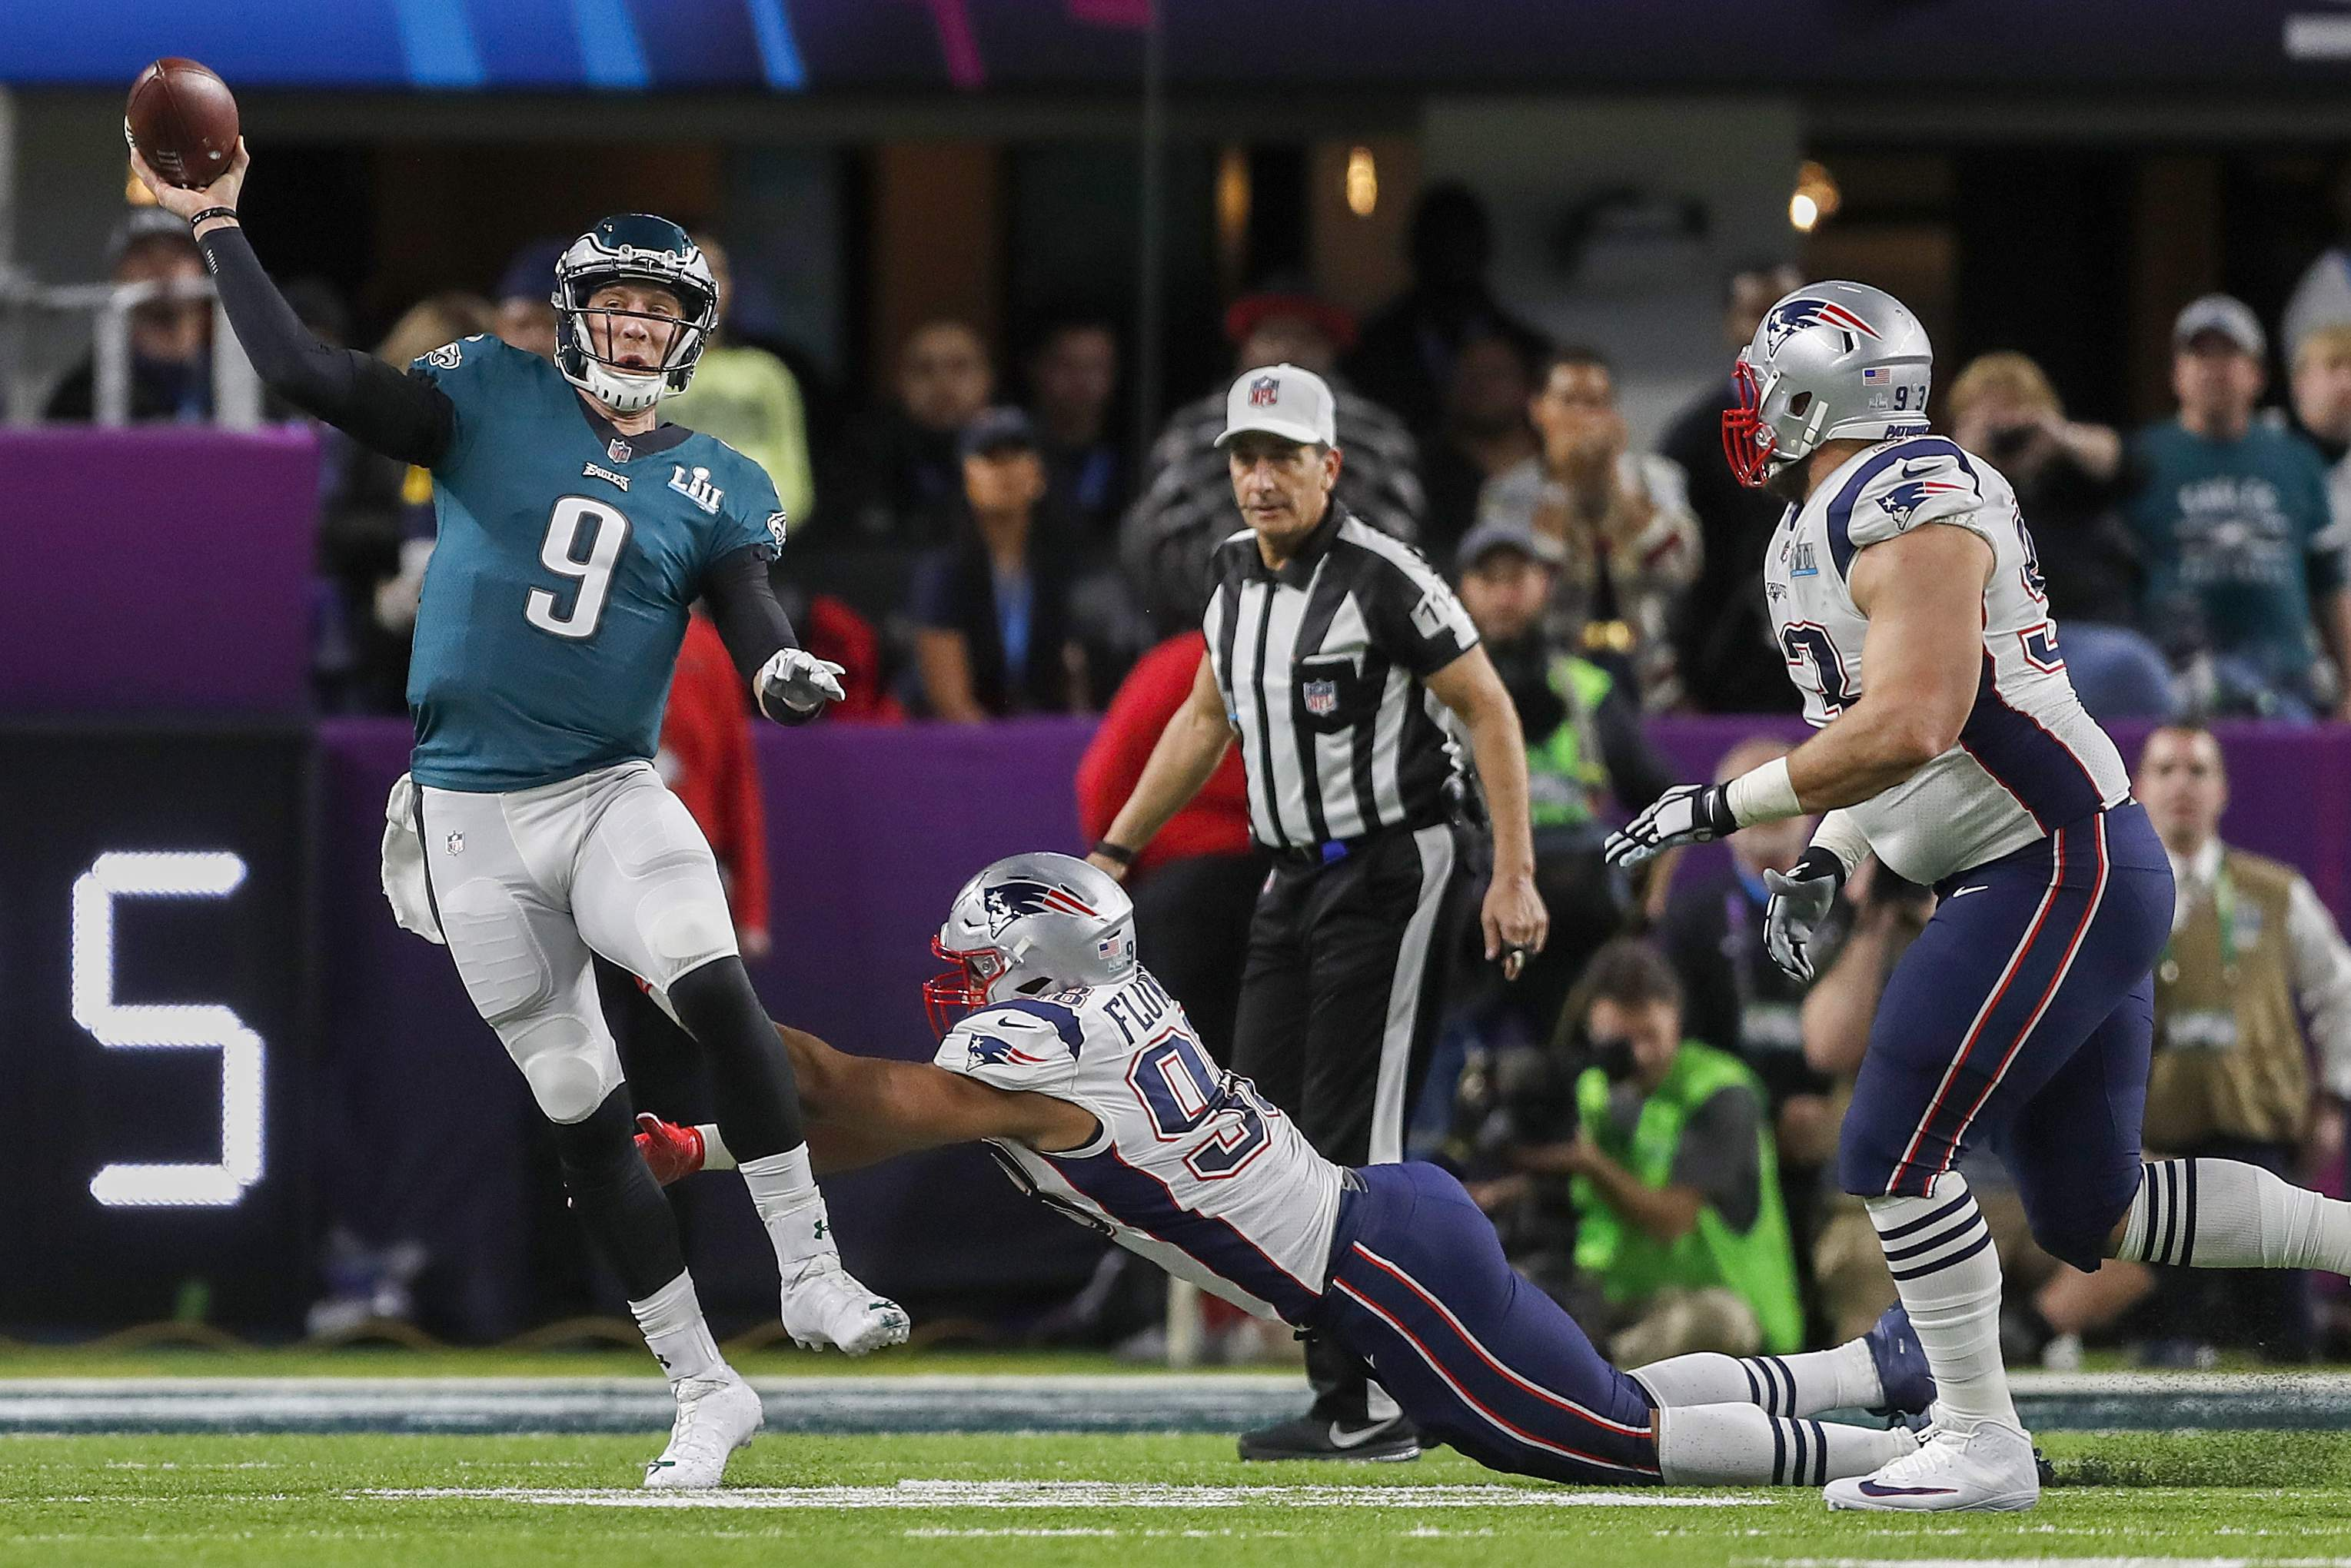 Philadelphia Eagles' Nick Foles (9) is pressured by New England Patriots' Trey Flowers during the first half of the NFL Super Bowl 52 football game Sunday, Feb. 4, 2018, in Minneapolis. (AP Photo/Jeff Roberson)